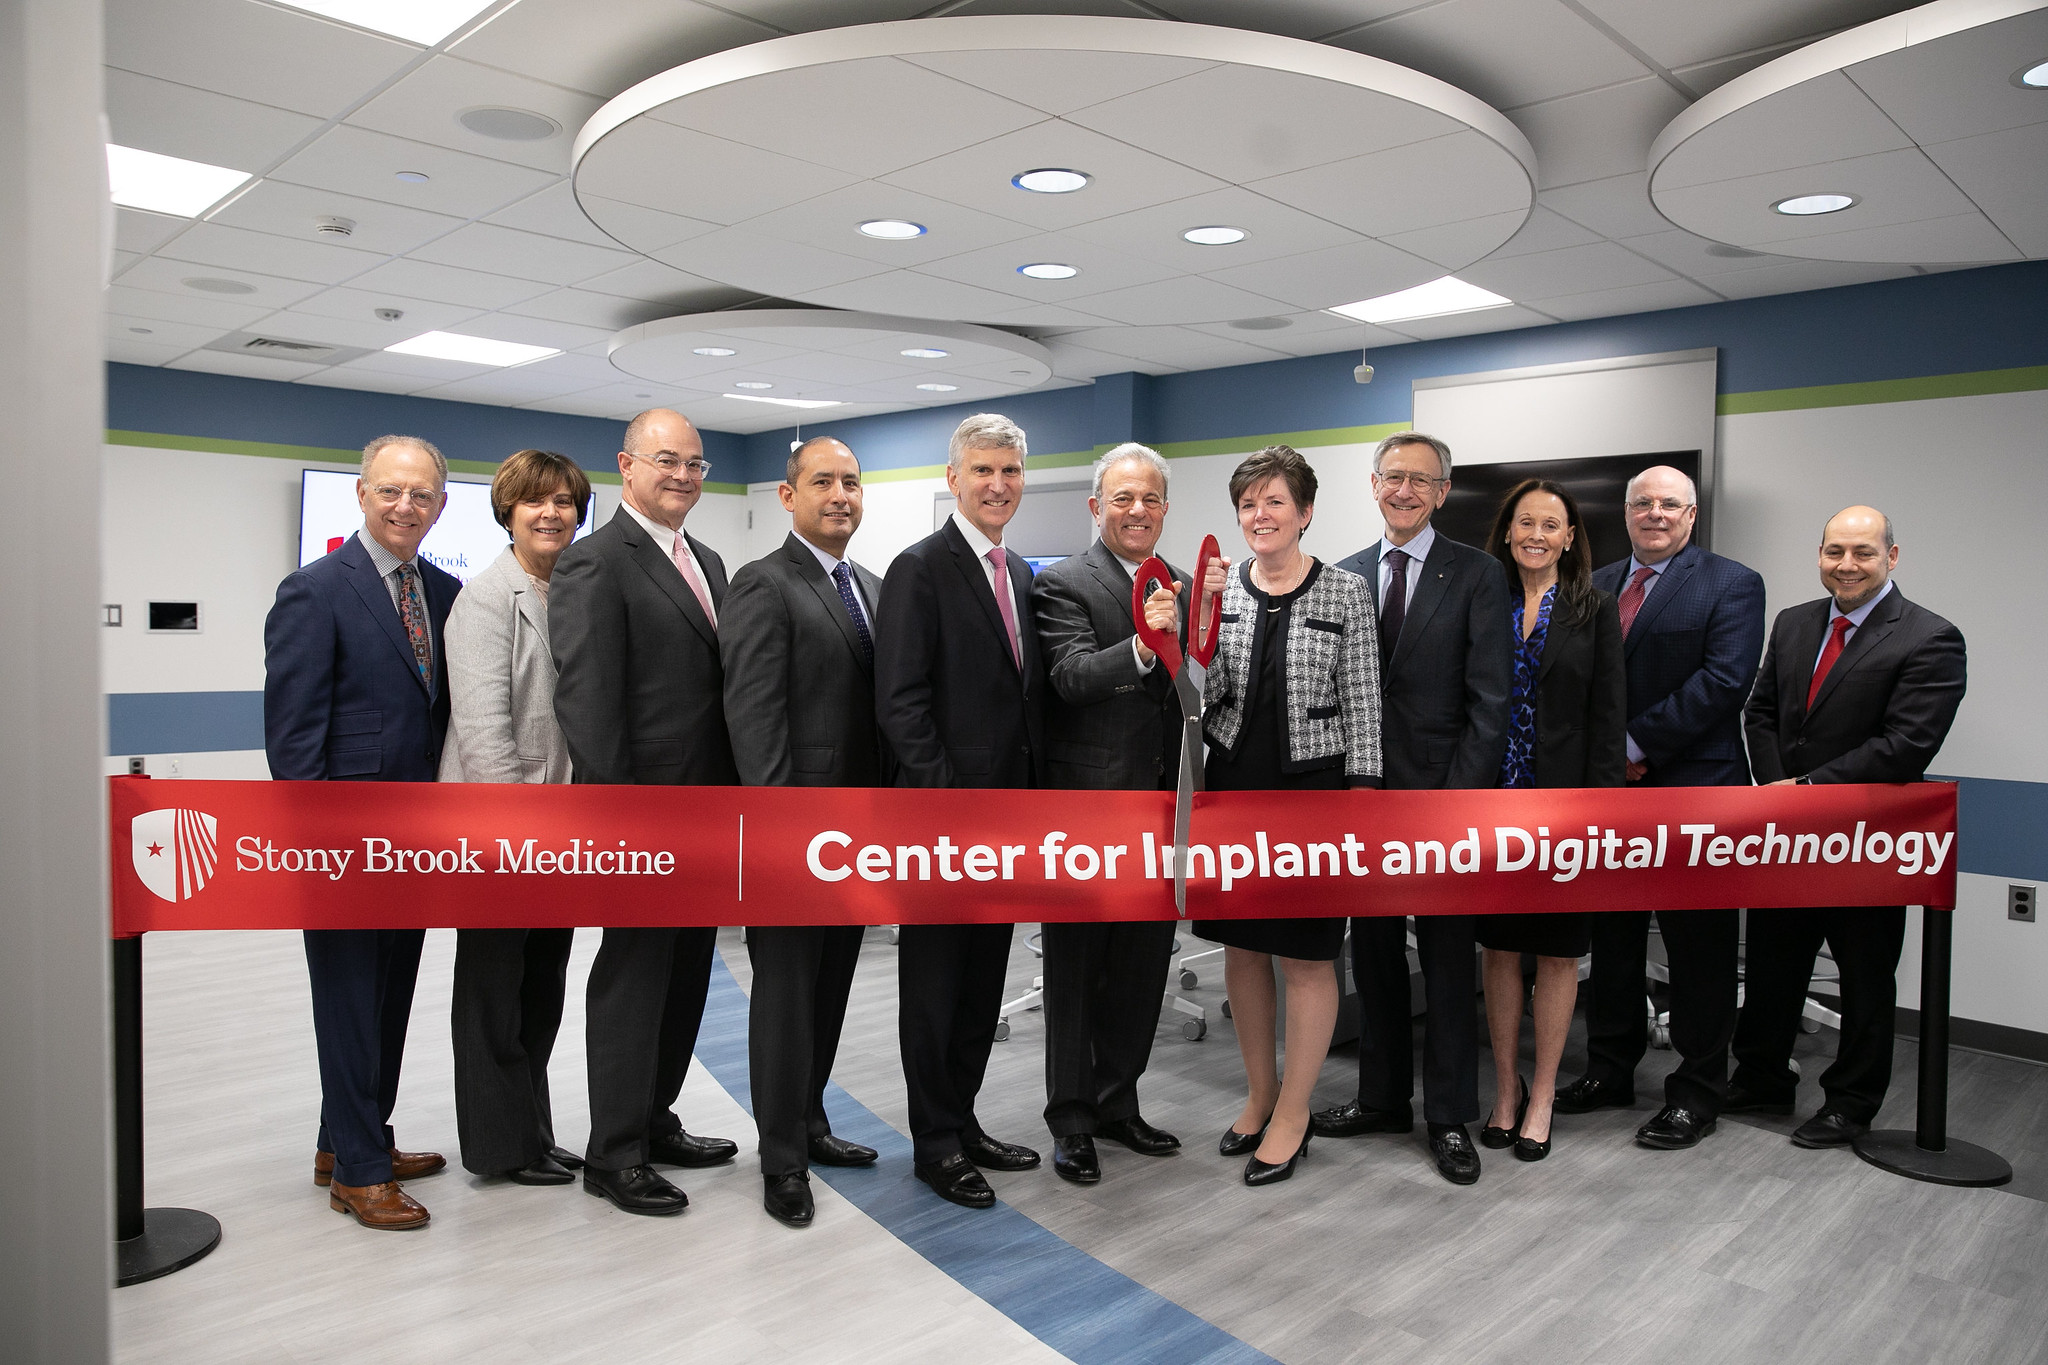 Pictured from left: Dr. Robert Reiner, Clinical Associate Professor; Carol Sloane, Assistant Dean for Clinical Operations; Dr. Allan Kucine, Associate Dean for Information Technology; Axel Calderon, Manager of the Center for Implant and Digital Technology; Cary Staller, Stony Brook Foundation and SUNY Trustee; Dr. Michael Bernstein, Stony Brook University Interim President; Dr. Kenneth Kaushansky, Senior Vice President of the Health Sciences and Dean of the Renaissance School of Medicine; Dr. Mary R. Truhlar, Dean; Dr. Ann Nasti, Associate Dean for Clinical Education; Dr. Steven Zove, Associate Dean for Clinical Affairs; Dr. Rafael Delgado-Ruiz, Associate Professor